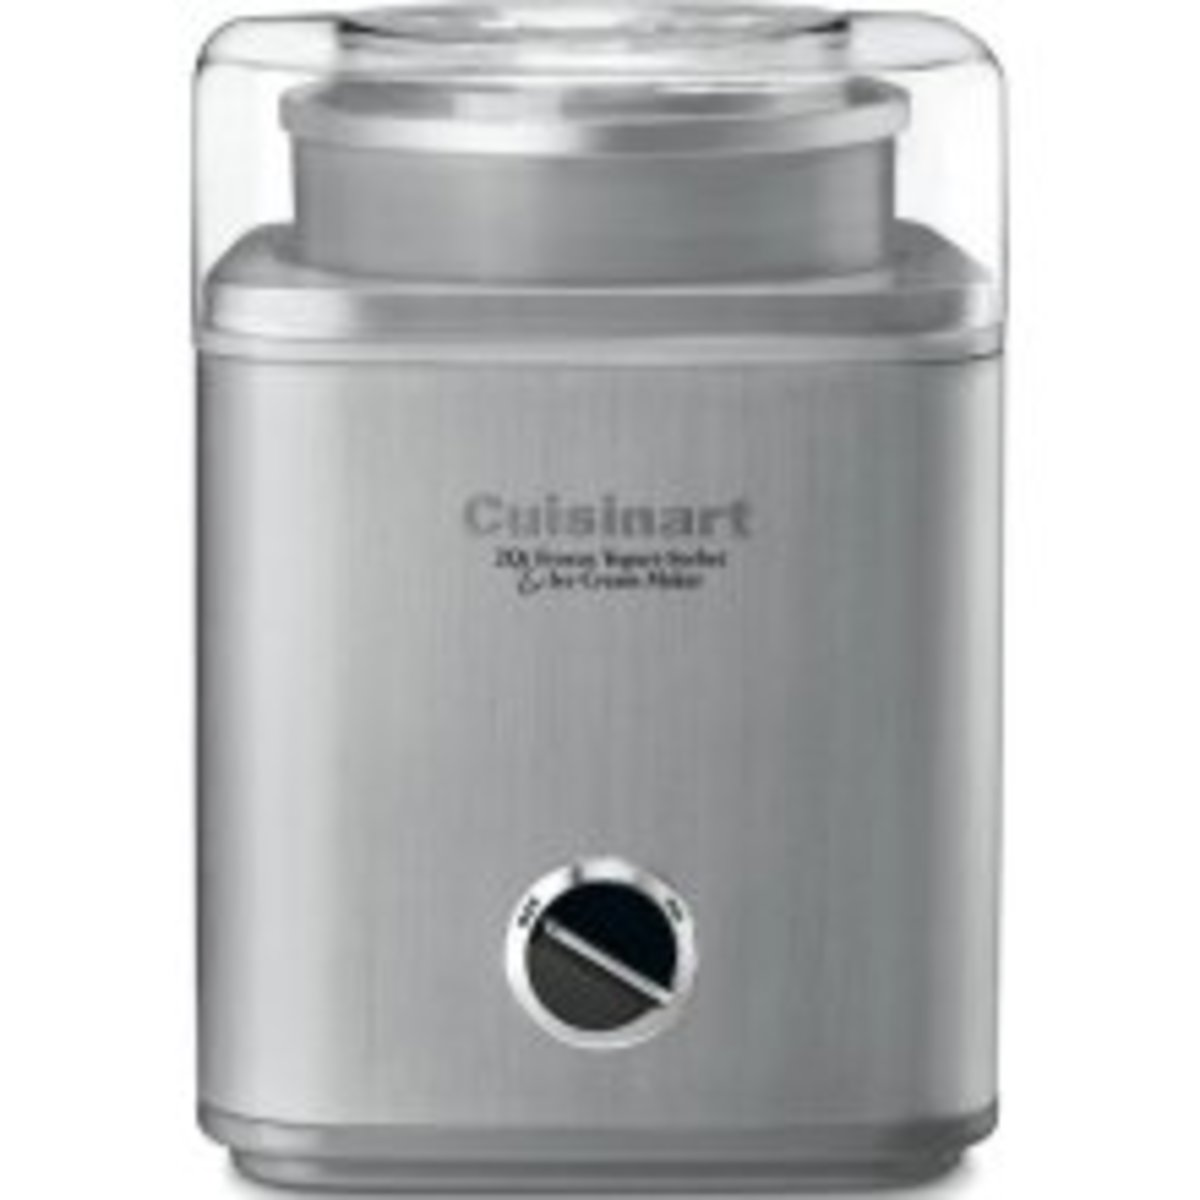 Cuisinart ICE-30BC Pure Indulgence Ice Cream Maker